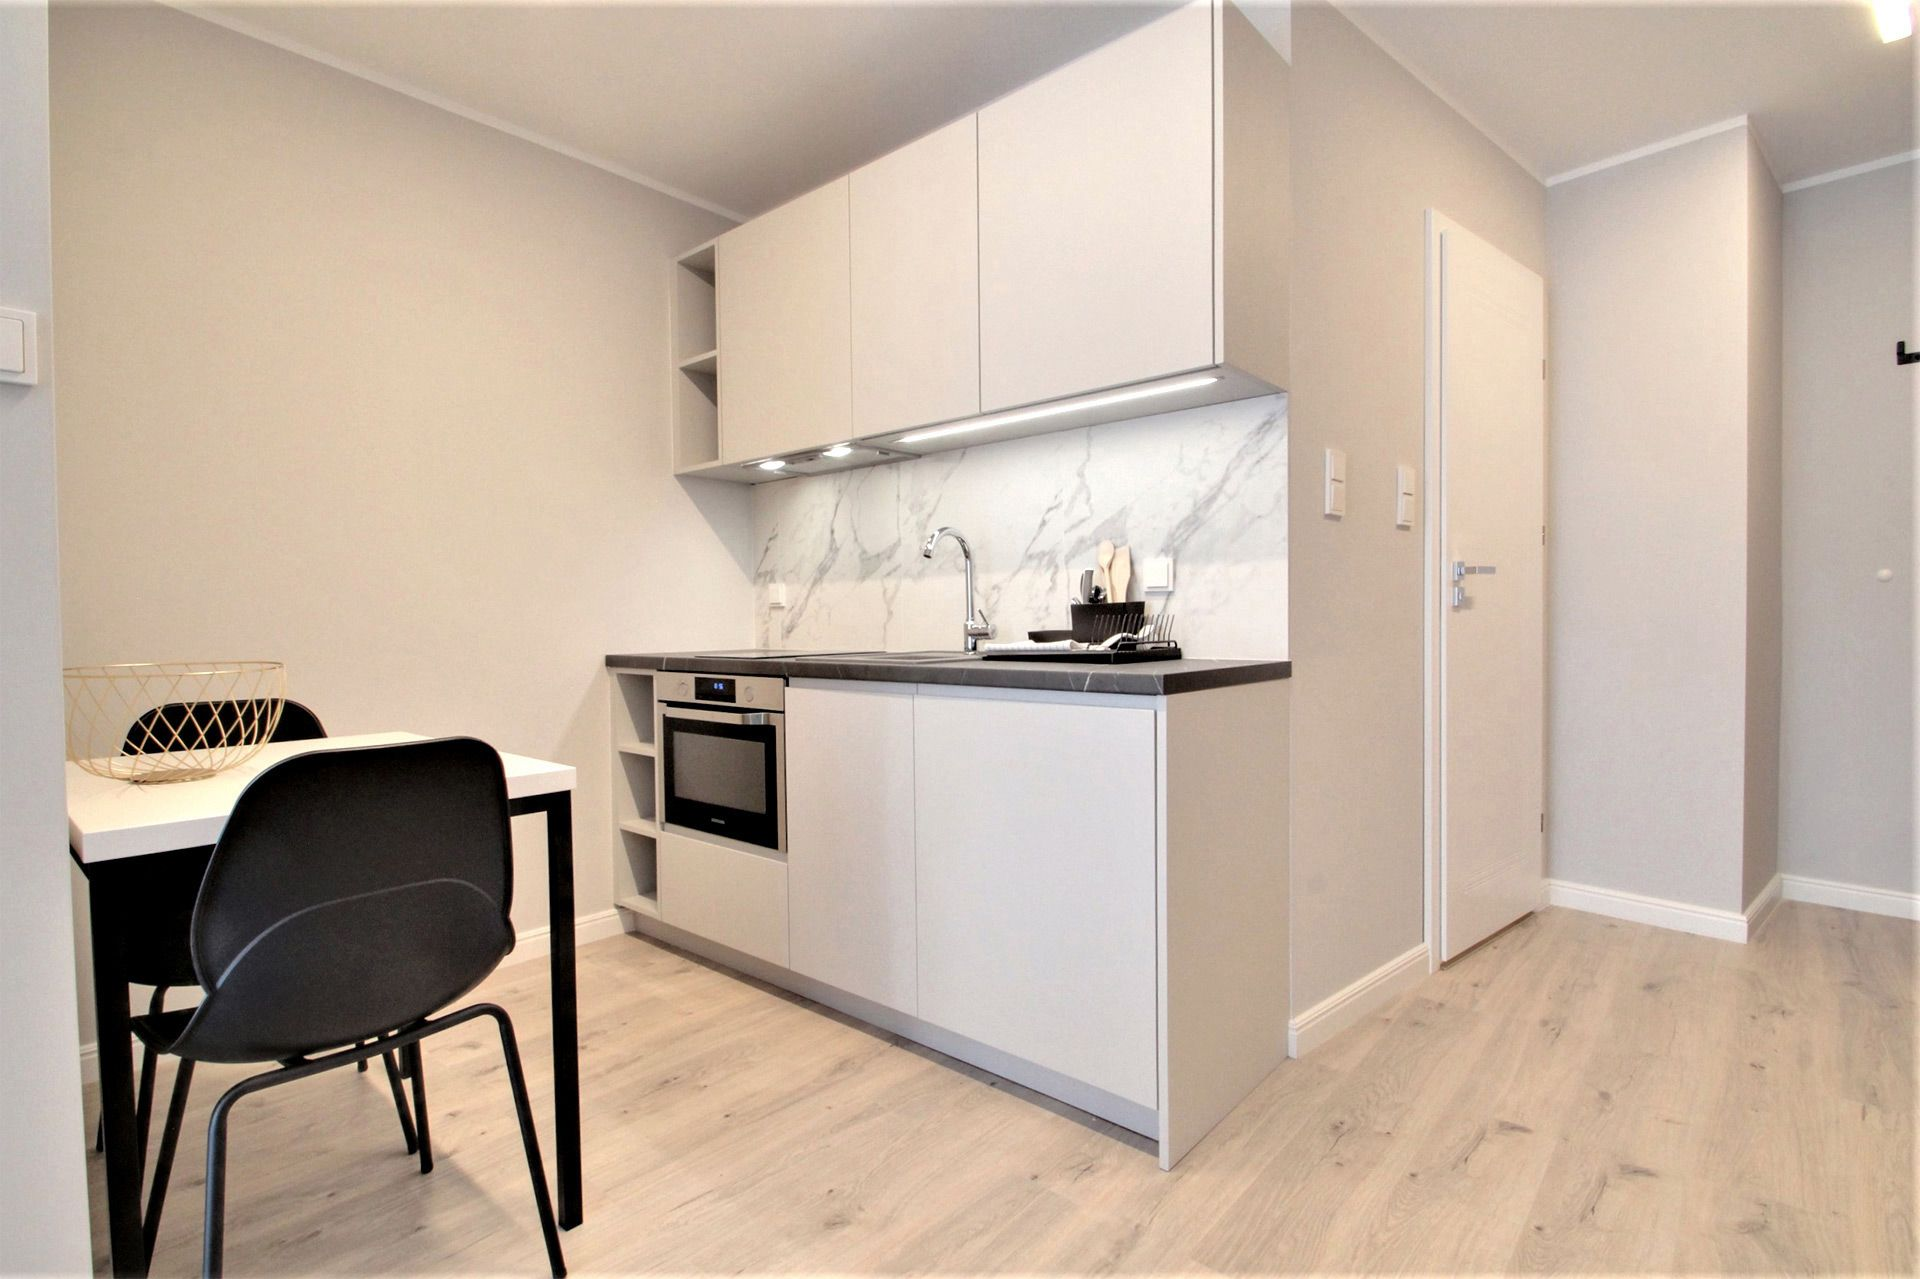 Studio - Small apartment to rent in Warsaw UPR-A-064-3